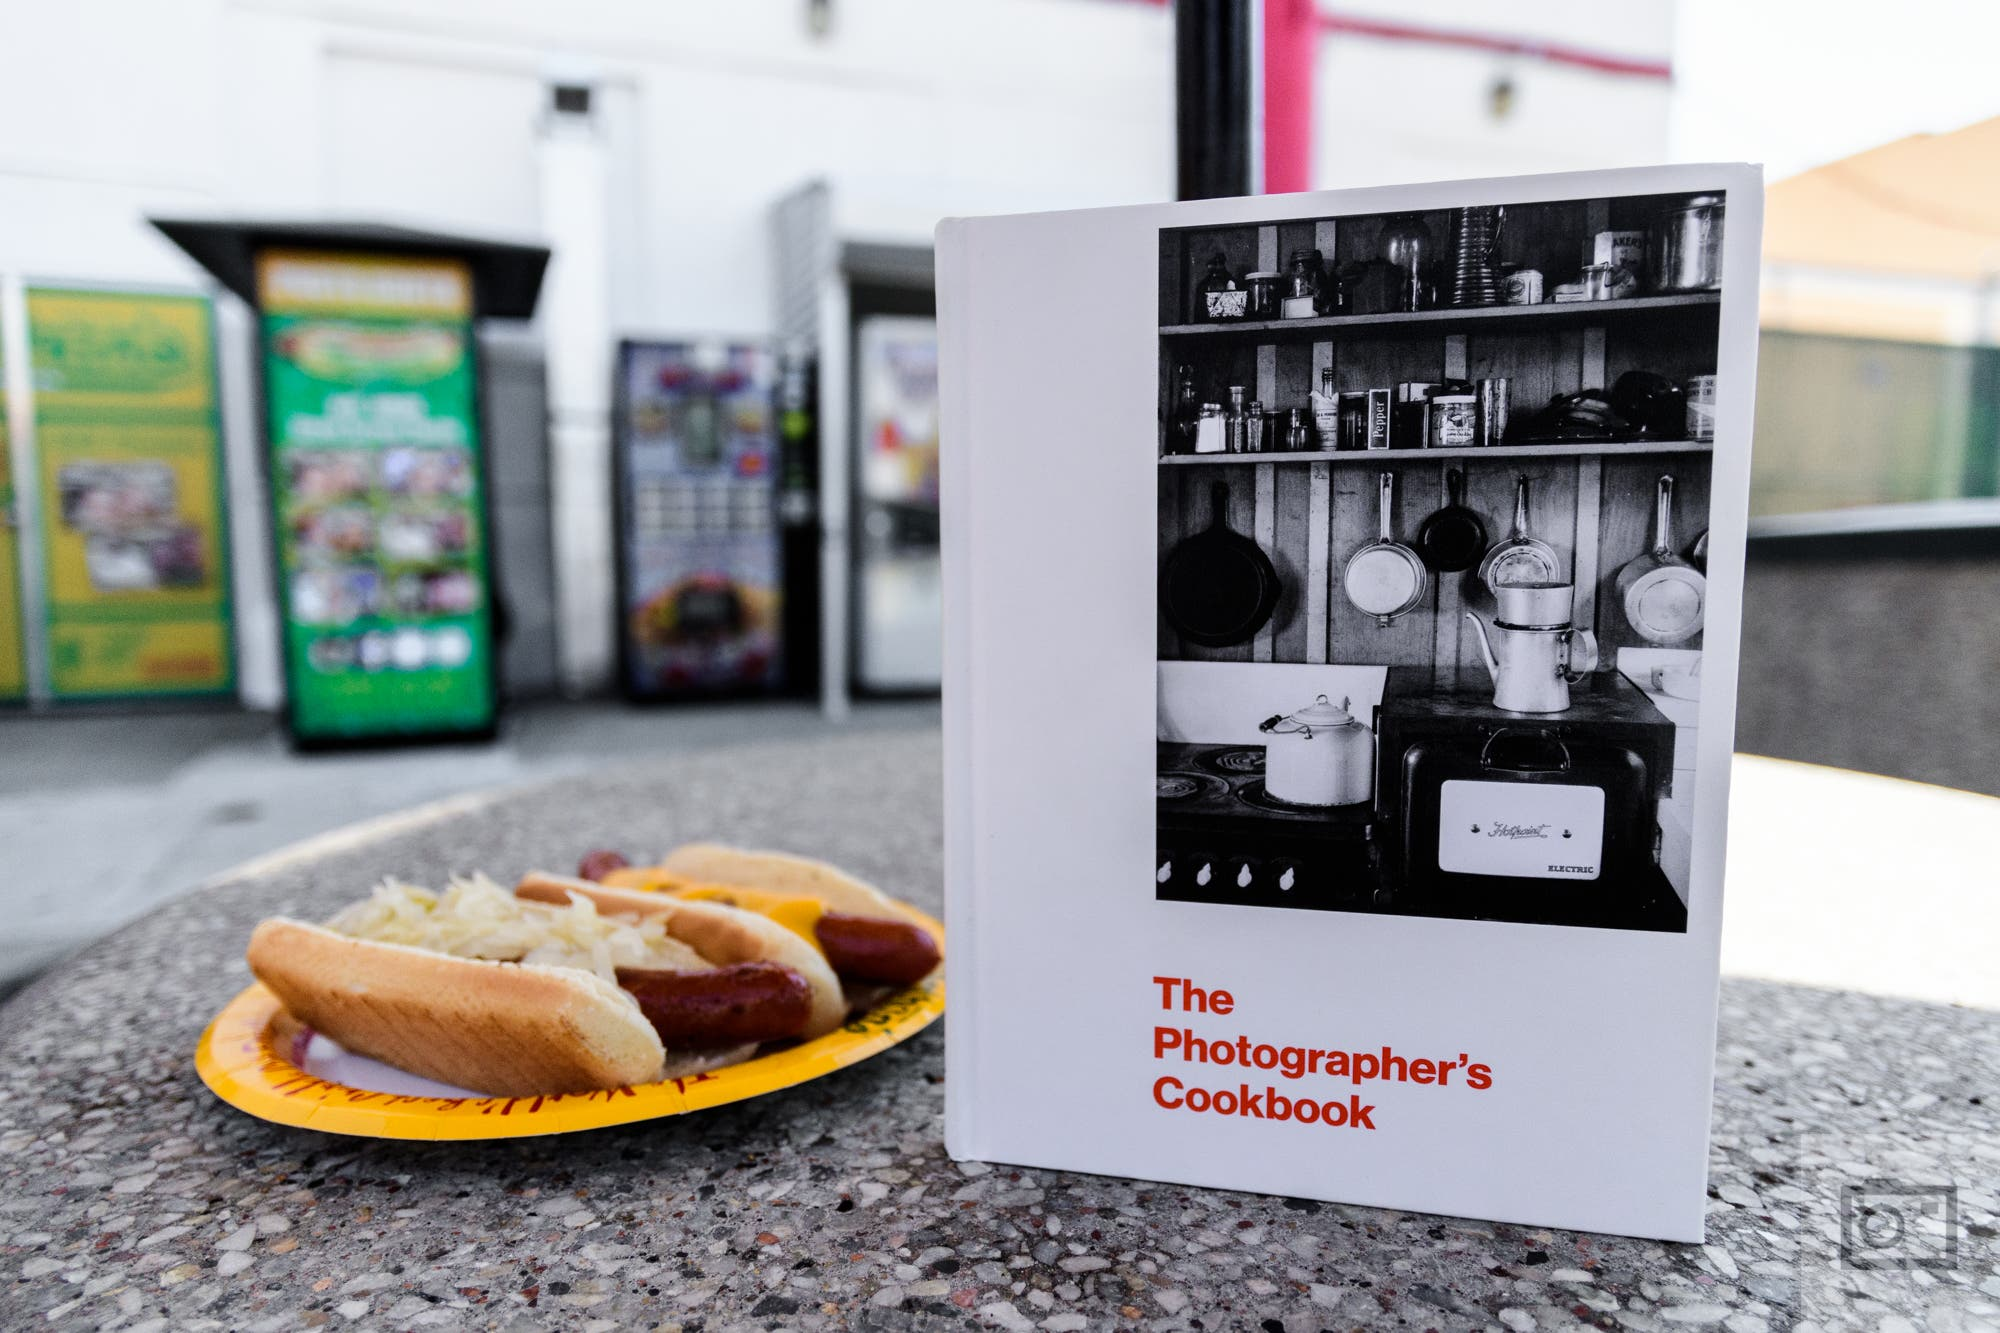 Review: The Photographer's Cookbook